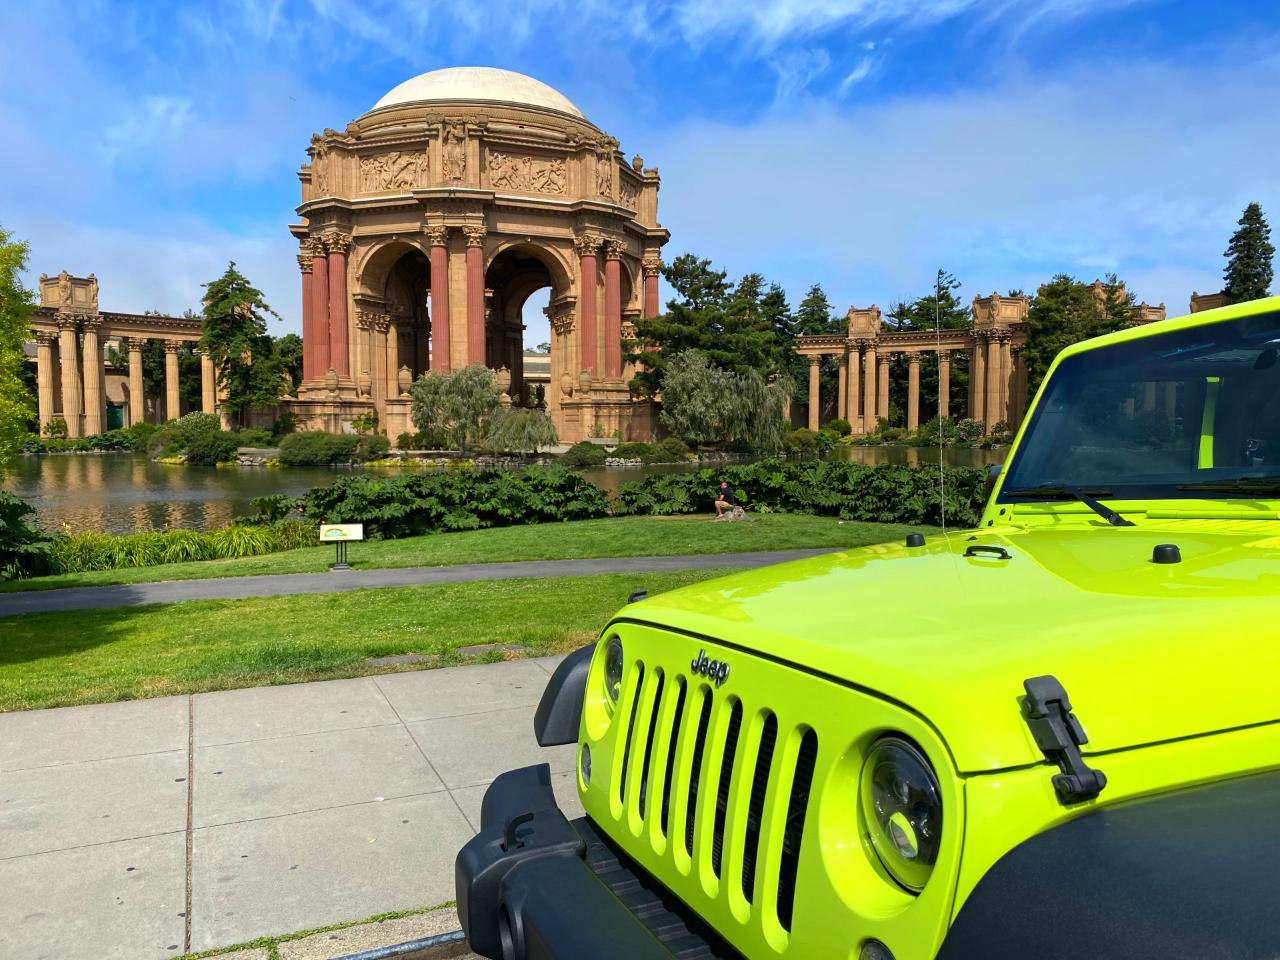 Full Day City Tour Plus Muir Giant Redwoods and Sausalito - Private Tour by Convertible Jeep